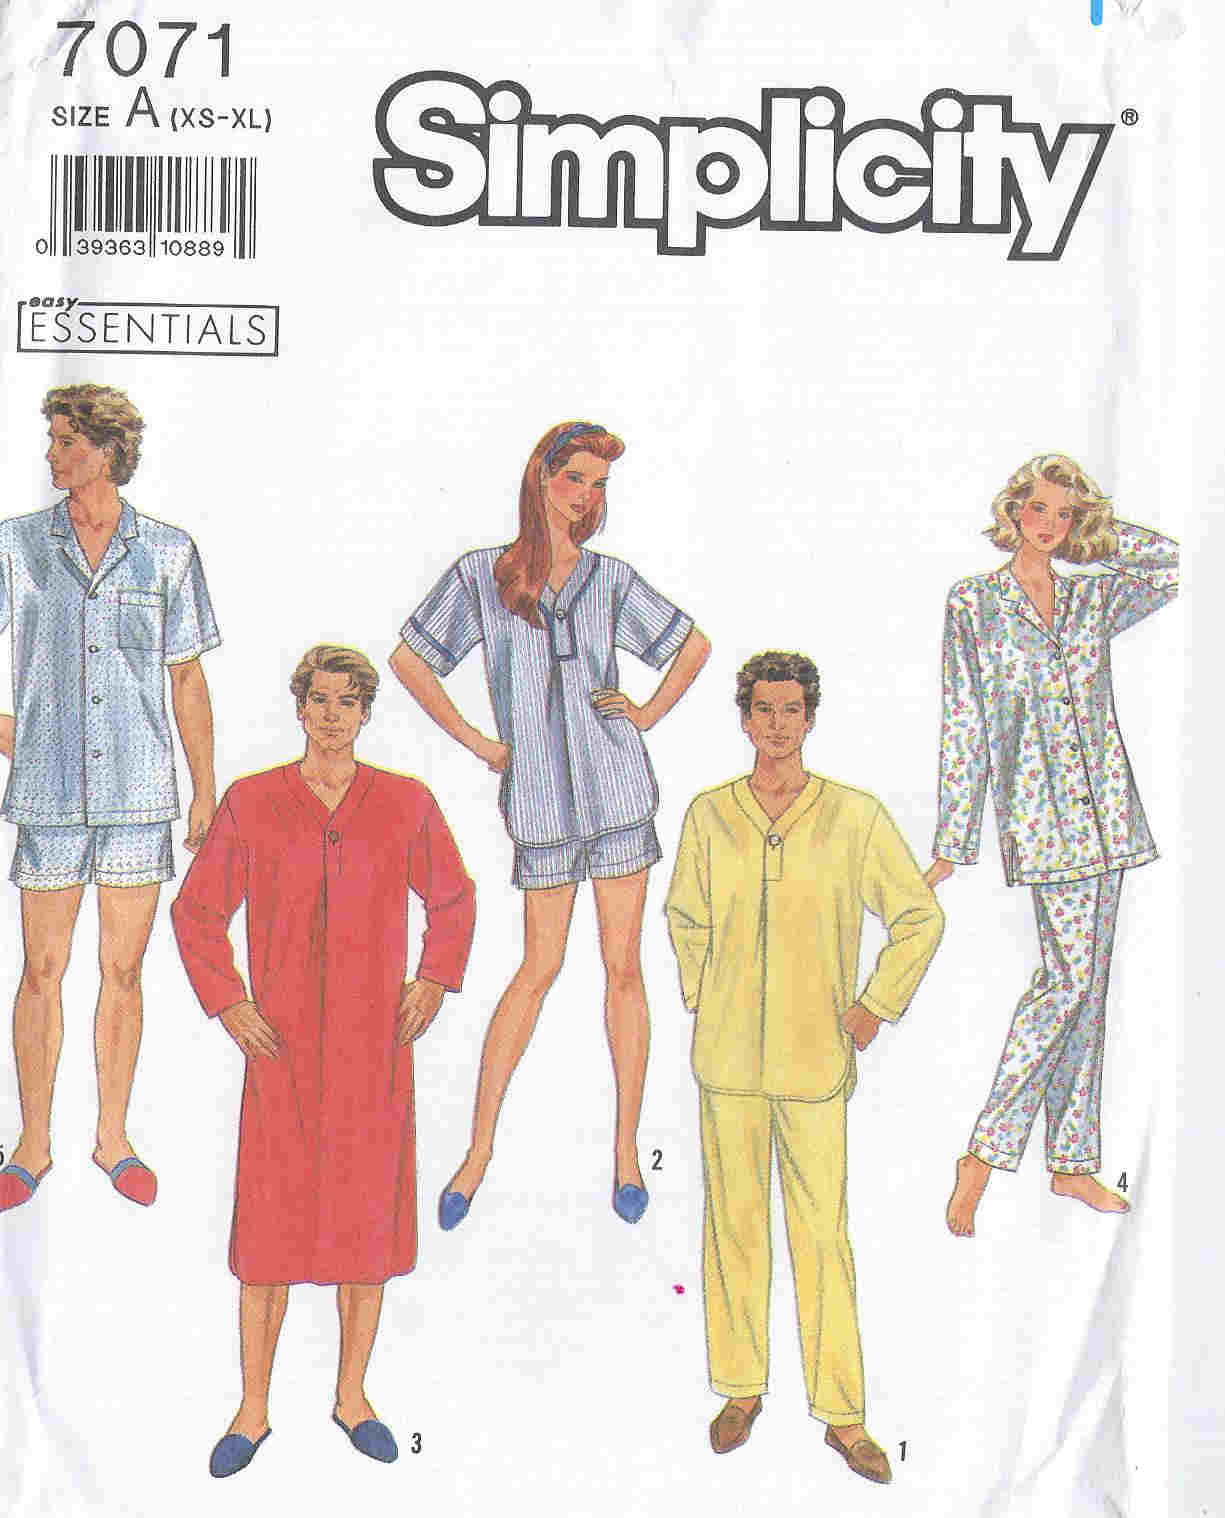 nightshirt pajamas unisex sewing pattern